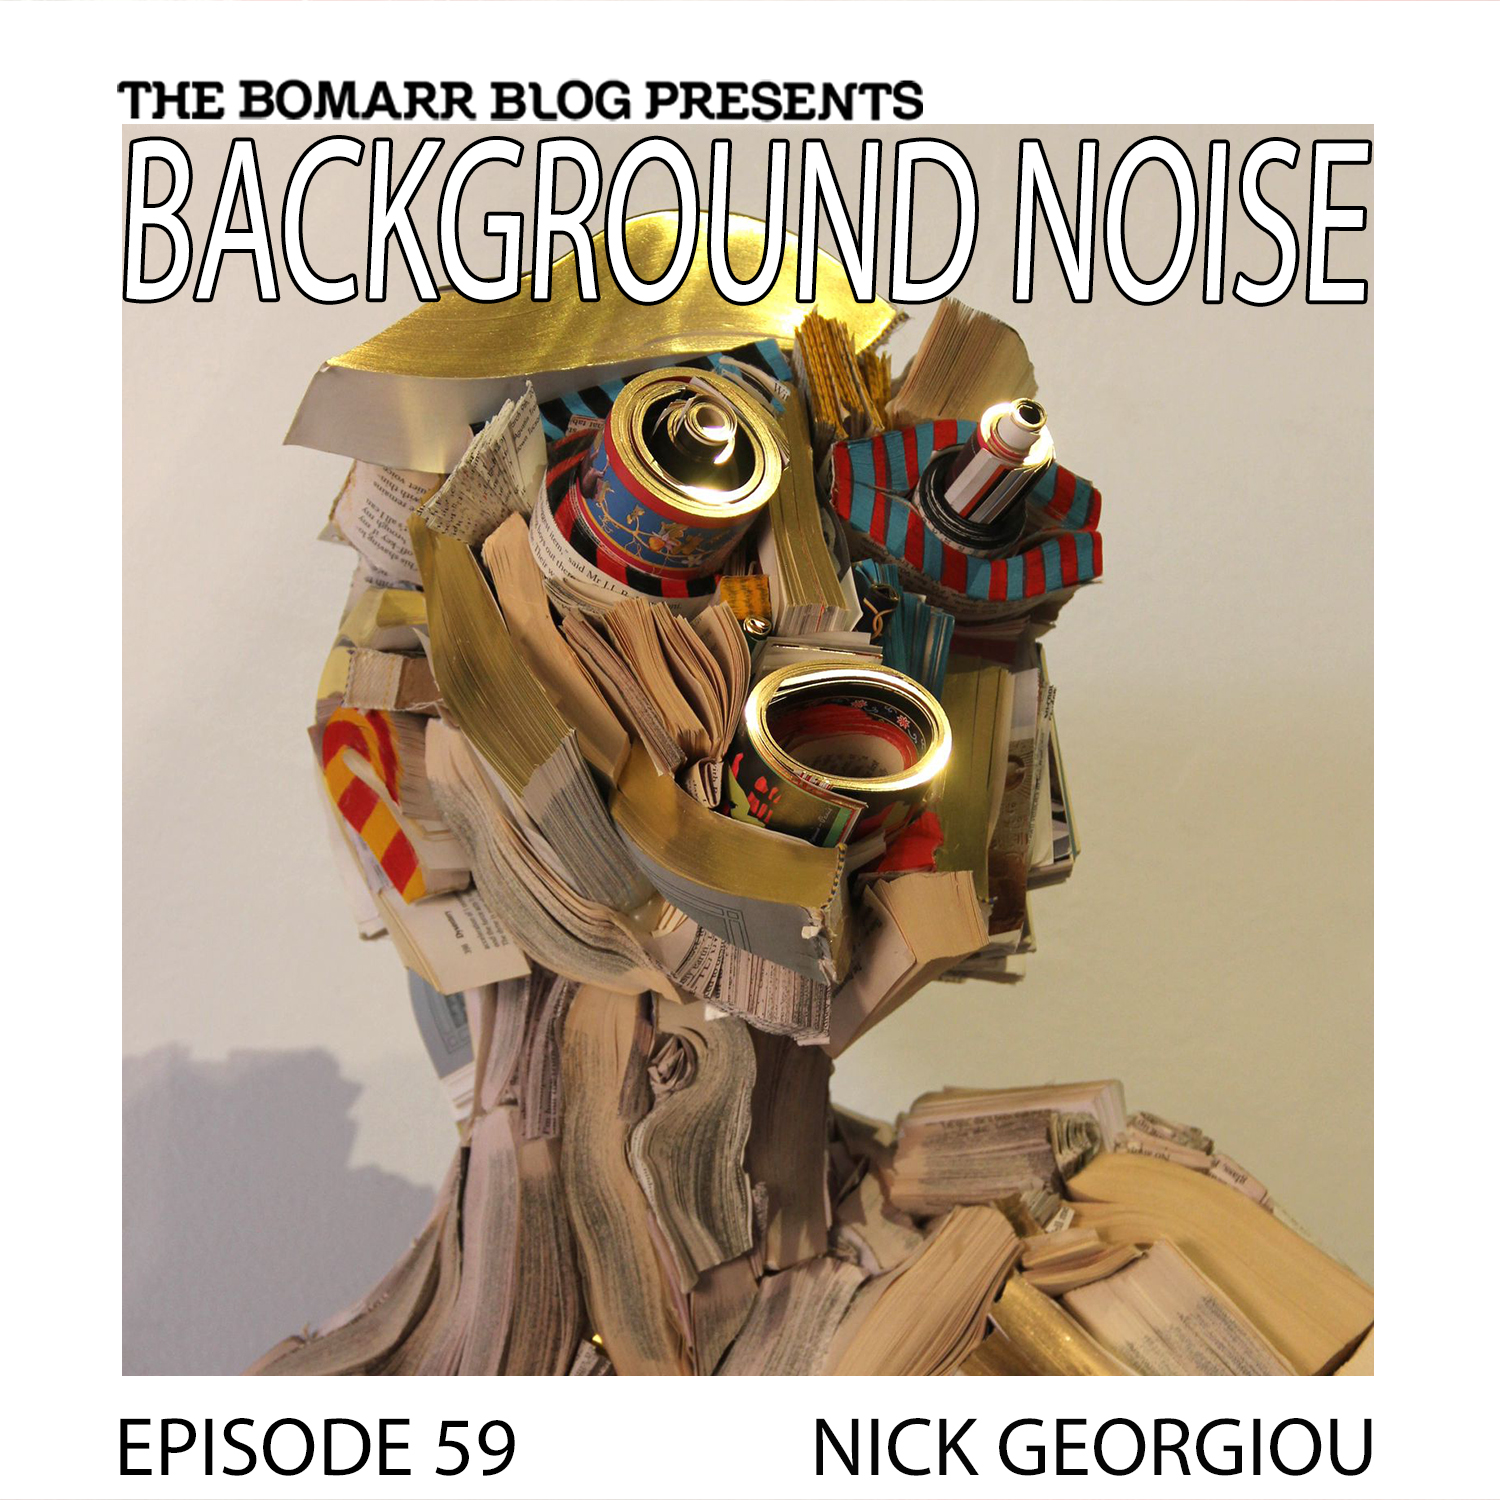 THE BACKGROUND NOISE PODCAST SERIES FOCUSES ON THE MUSIC THAT ARTISTS LISTEN TO WHEN THEY WORK, WHAT MUSIC INSPIRES THEM, OR JUST MUSIC THEY LIKE. THIS WEEK, IN EPISODE 59, the focus is on artist nick georgiou